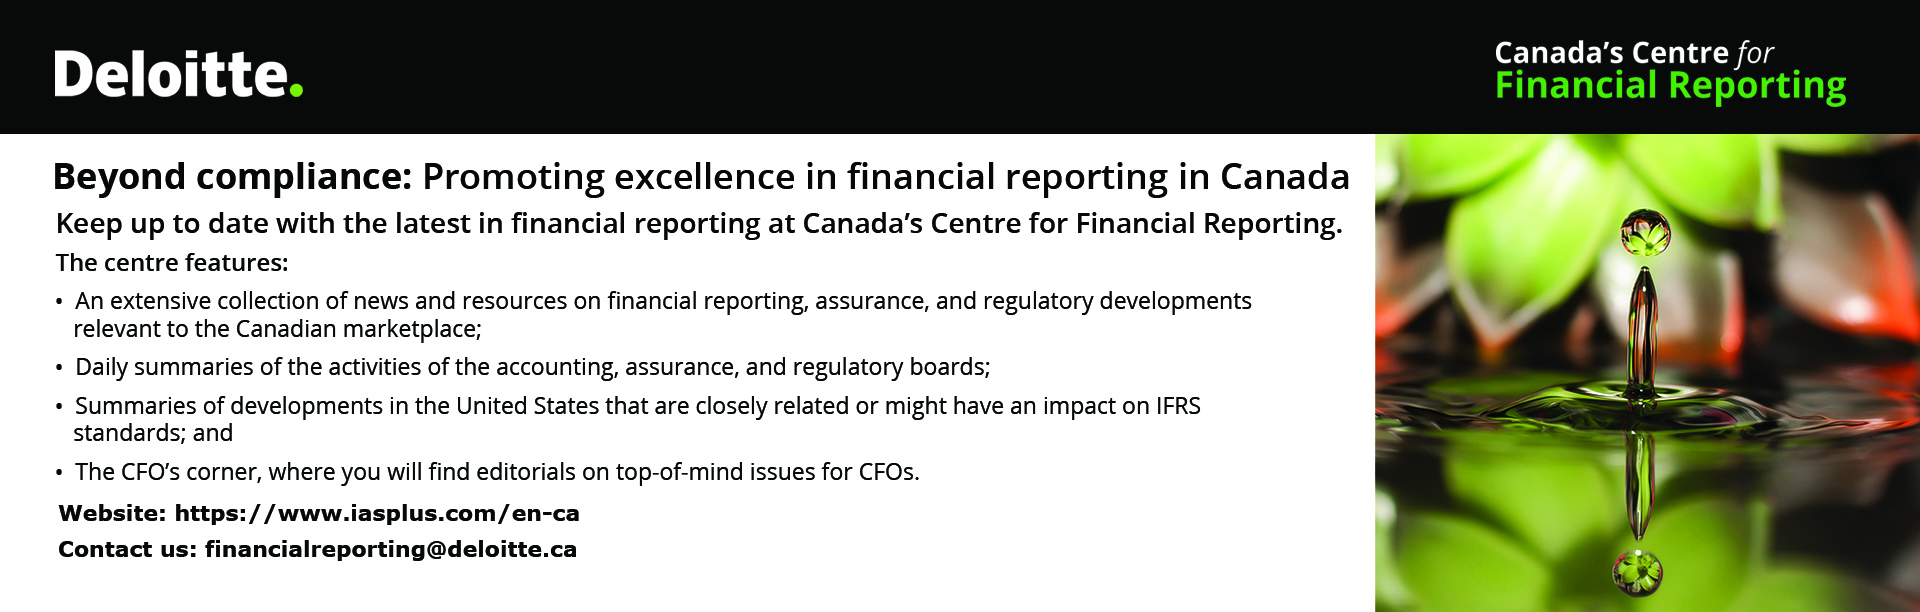 Deloitte - Beyond compliance: Promoting excellence in financial reporting in Canada